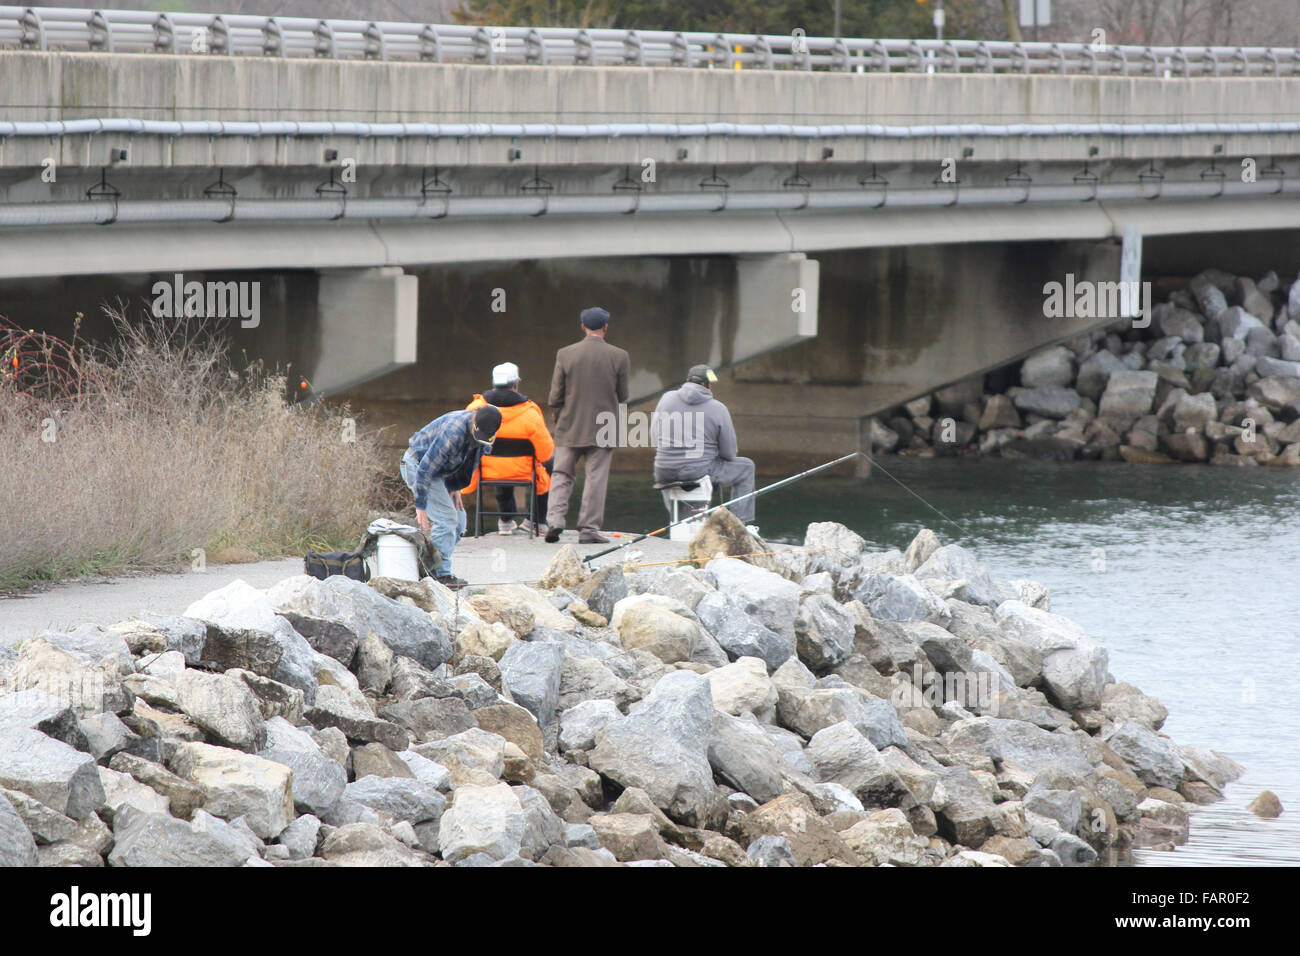 Four older men fishing from a stone landing. All facing away. Unrecognizable - Stock Image